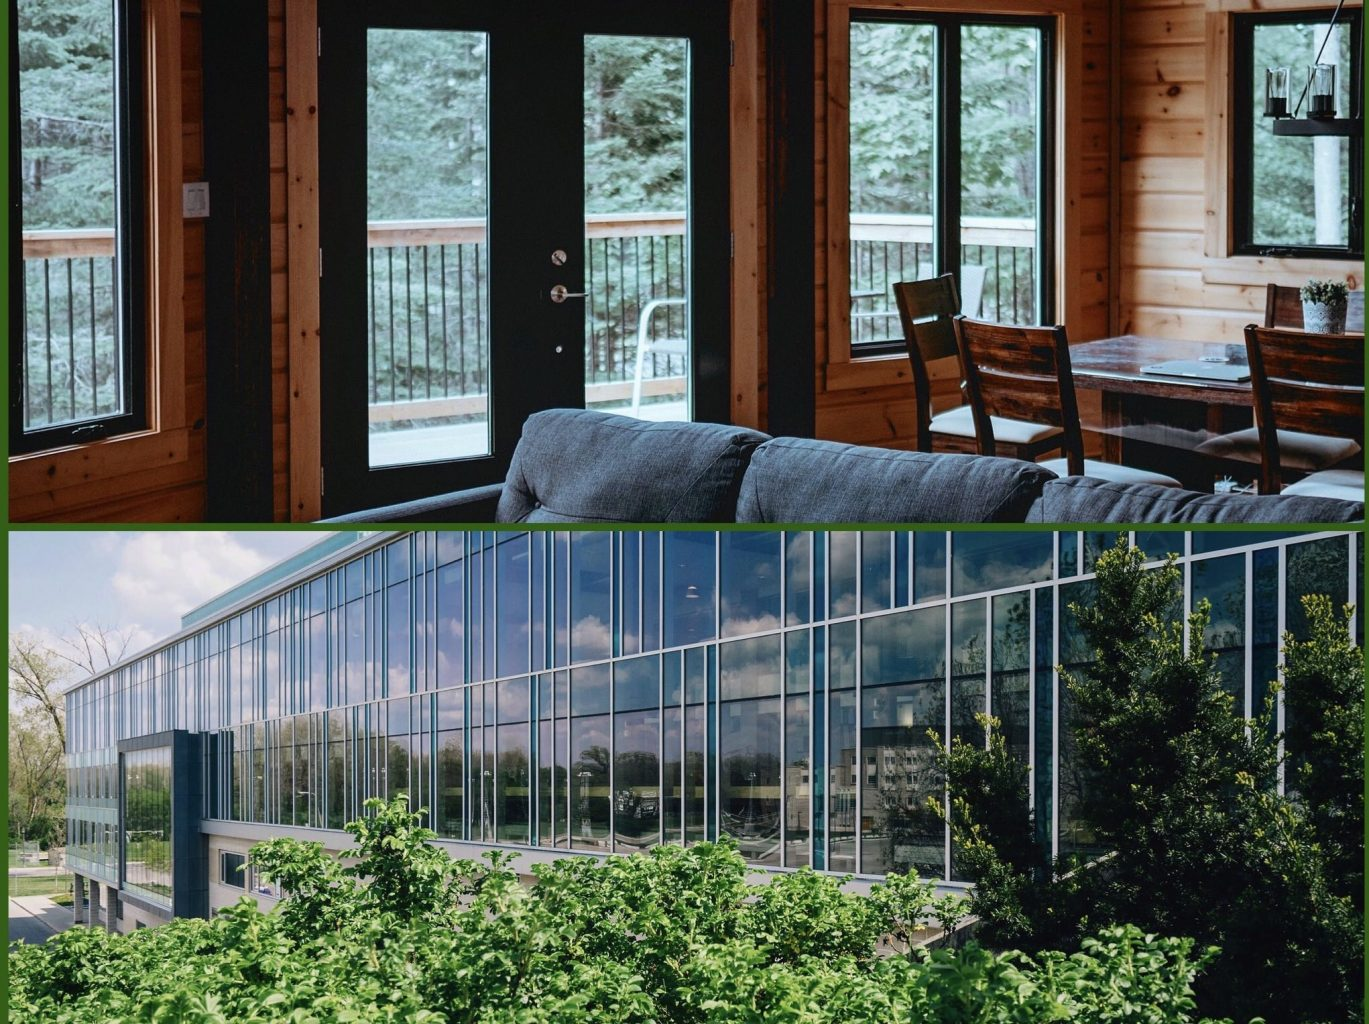 Seeing Green: Solar Control Window Films Save Money & Conserve Energy - Home and Commercial Window Film in Iowa City, Iowa